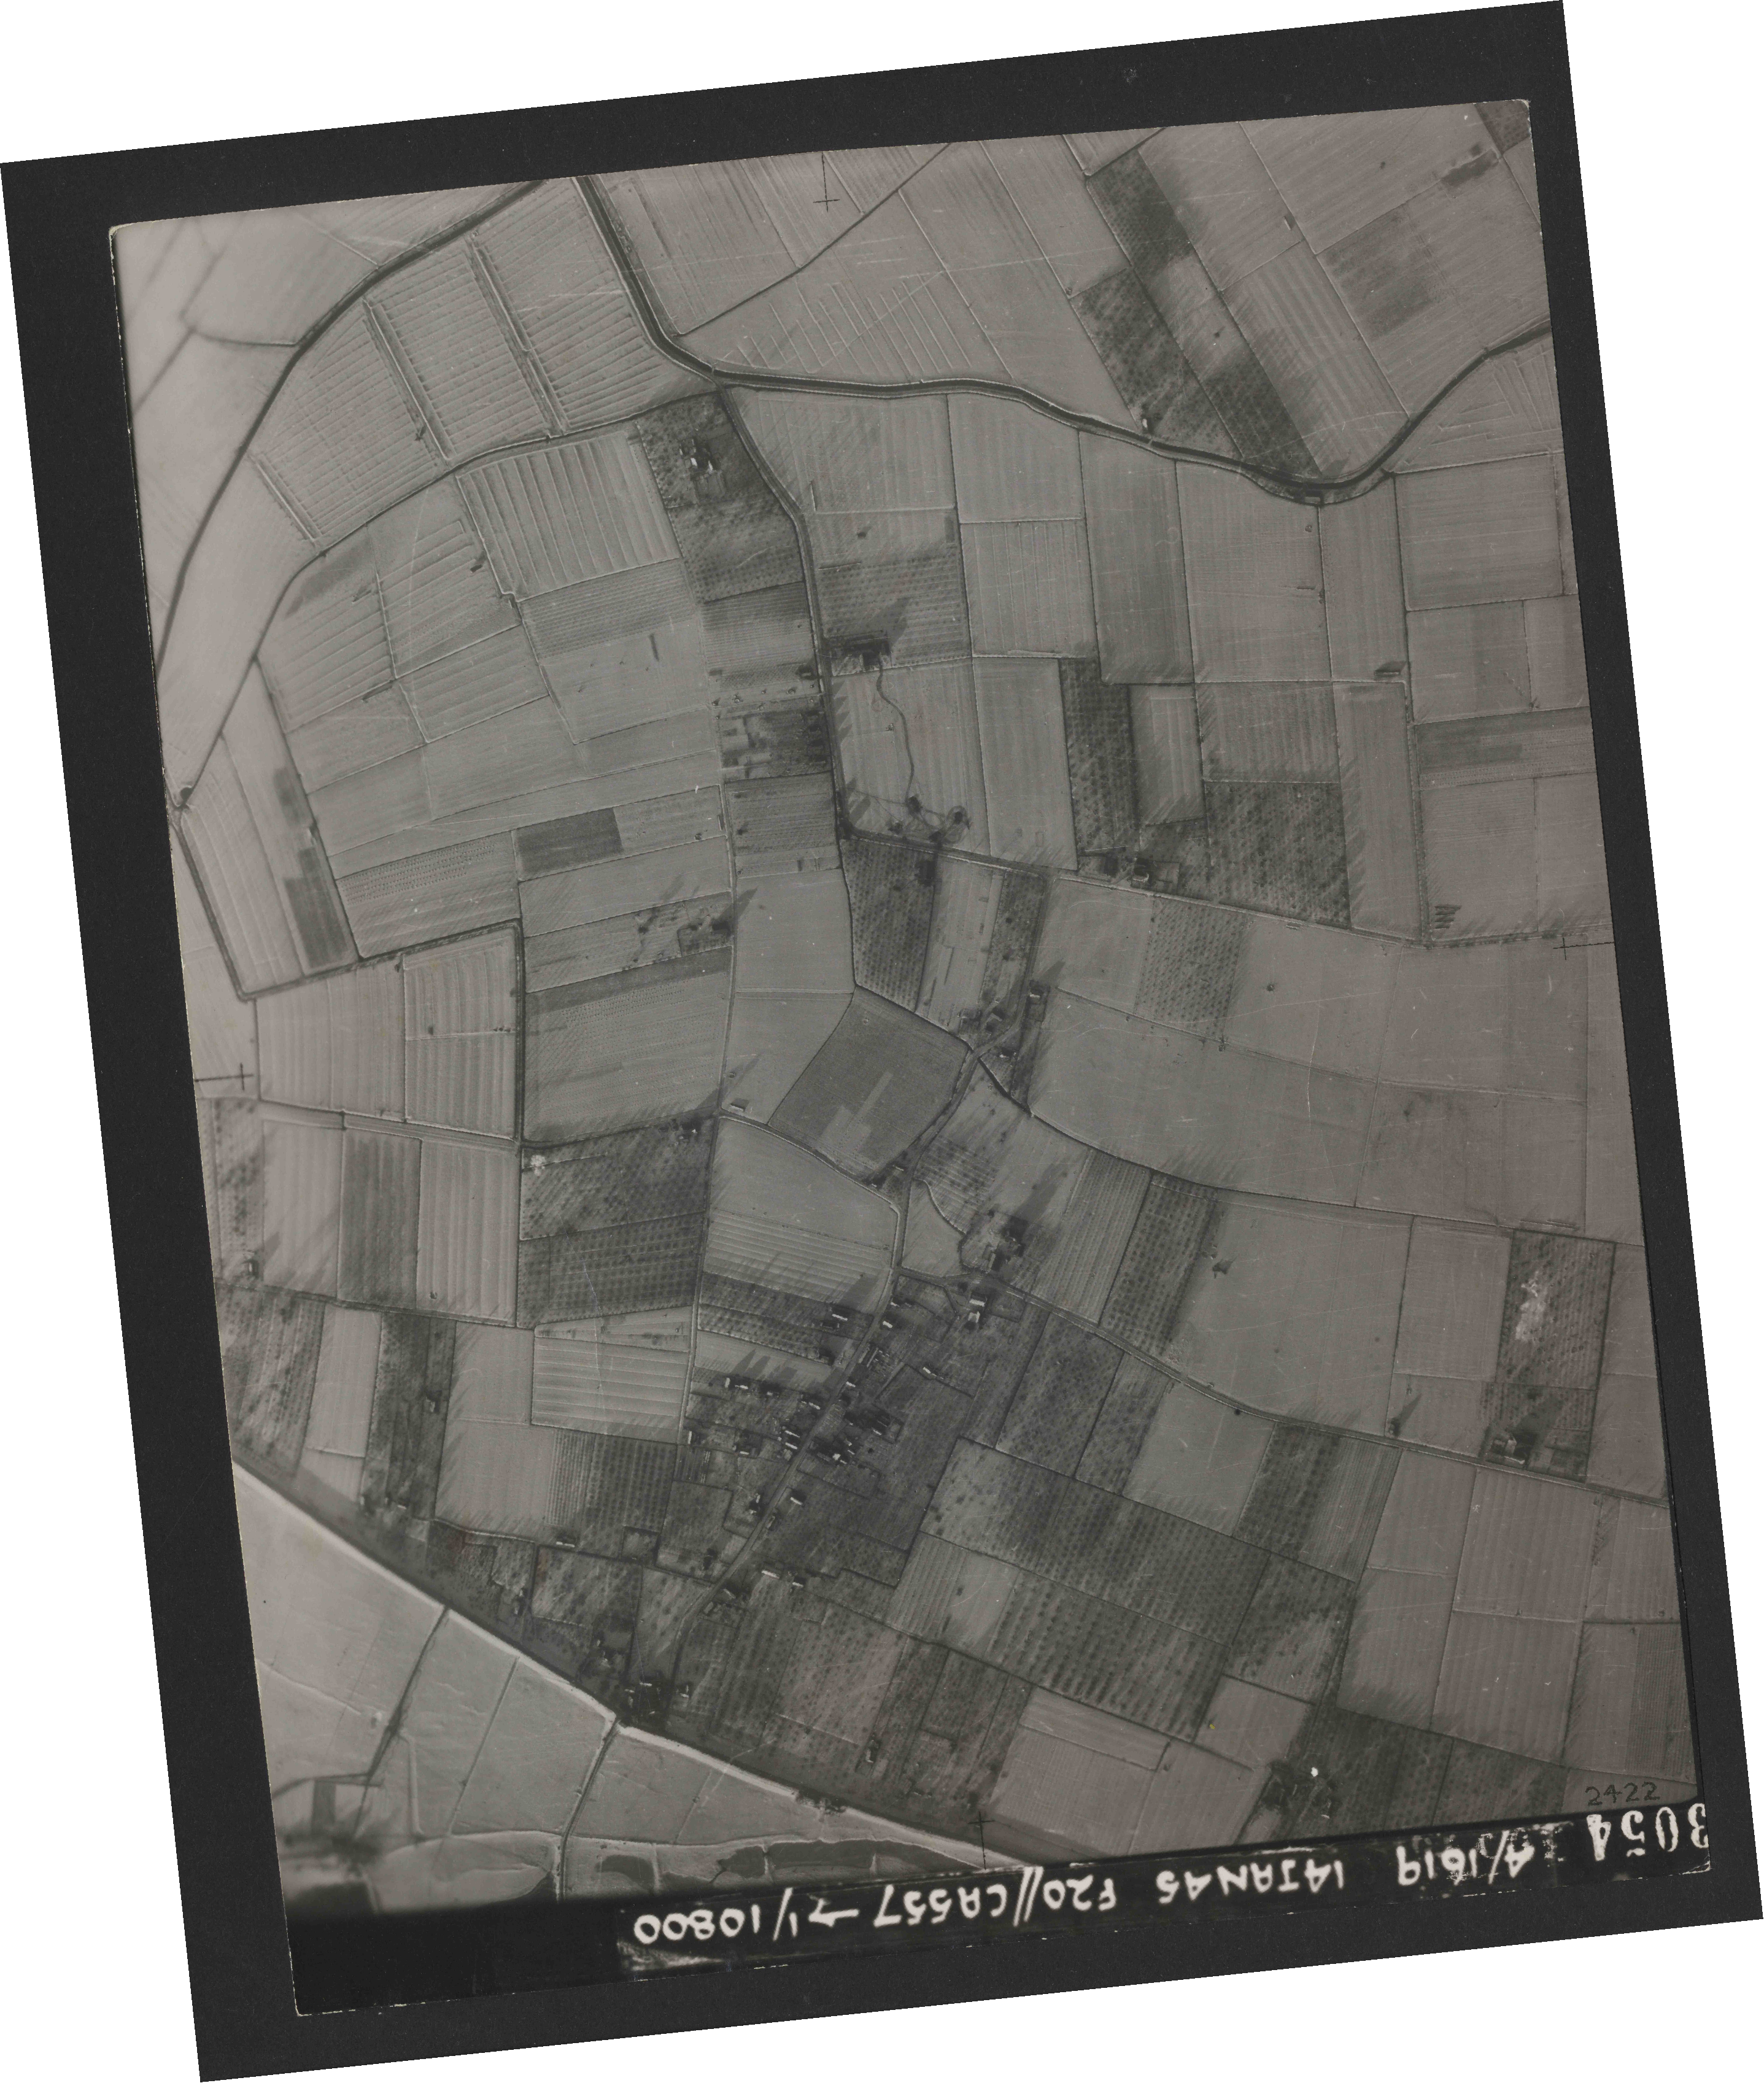 Collection RAF aerial photos 1940-1945 - flight 291, run 04, photo 3054